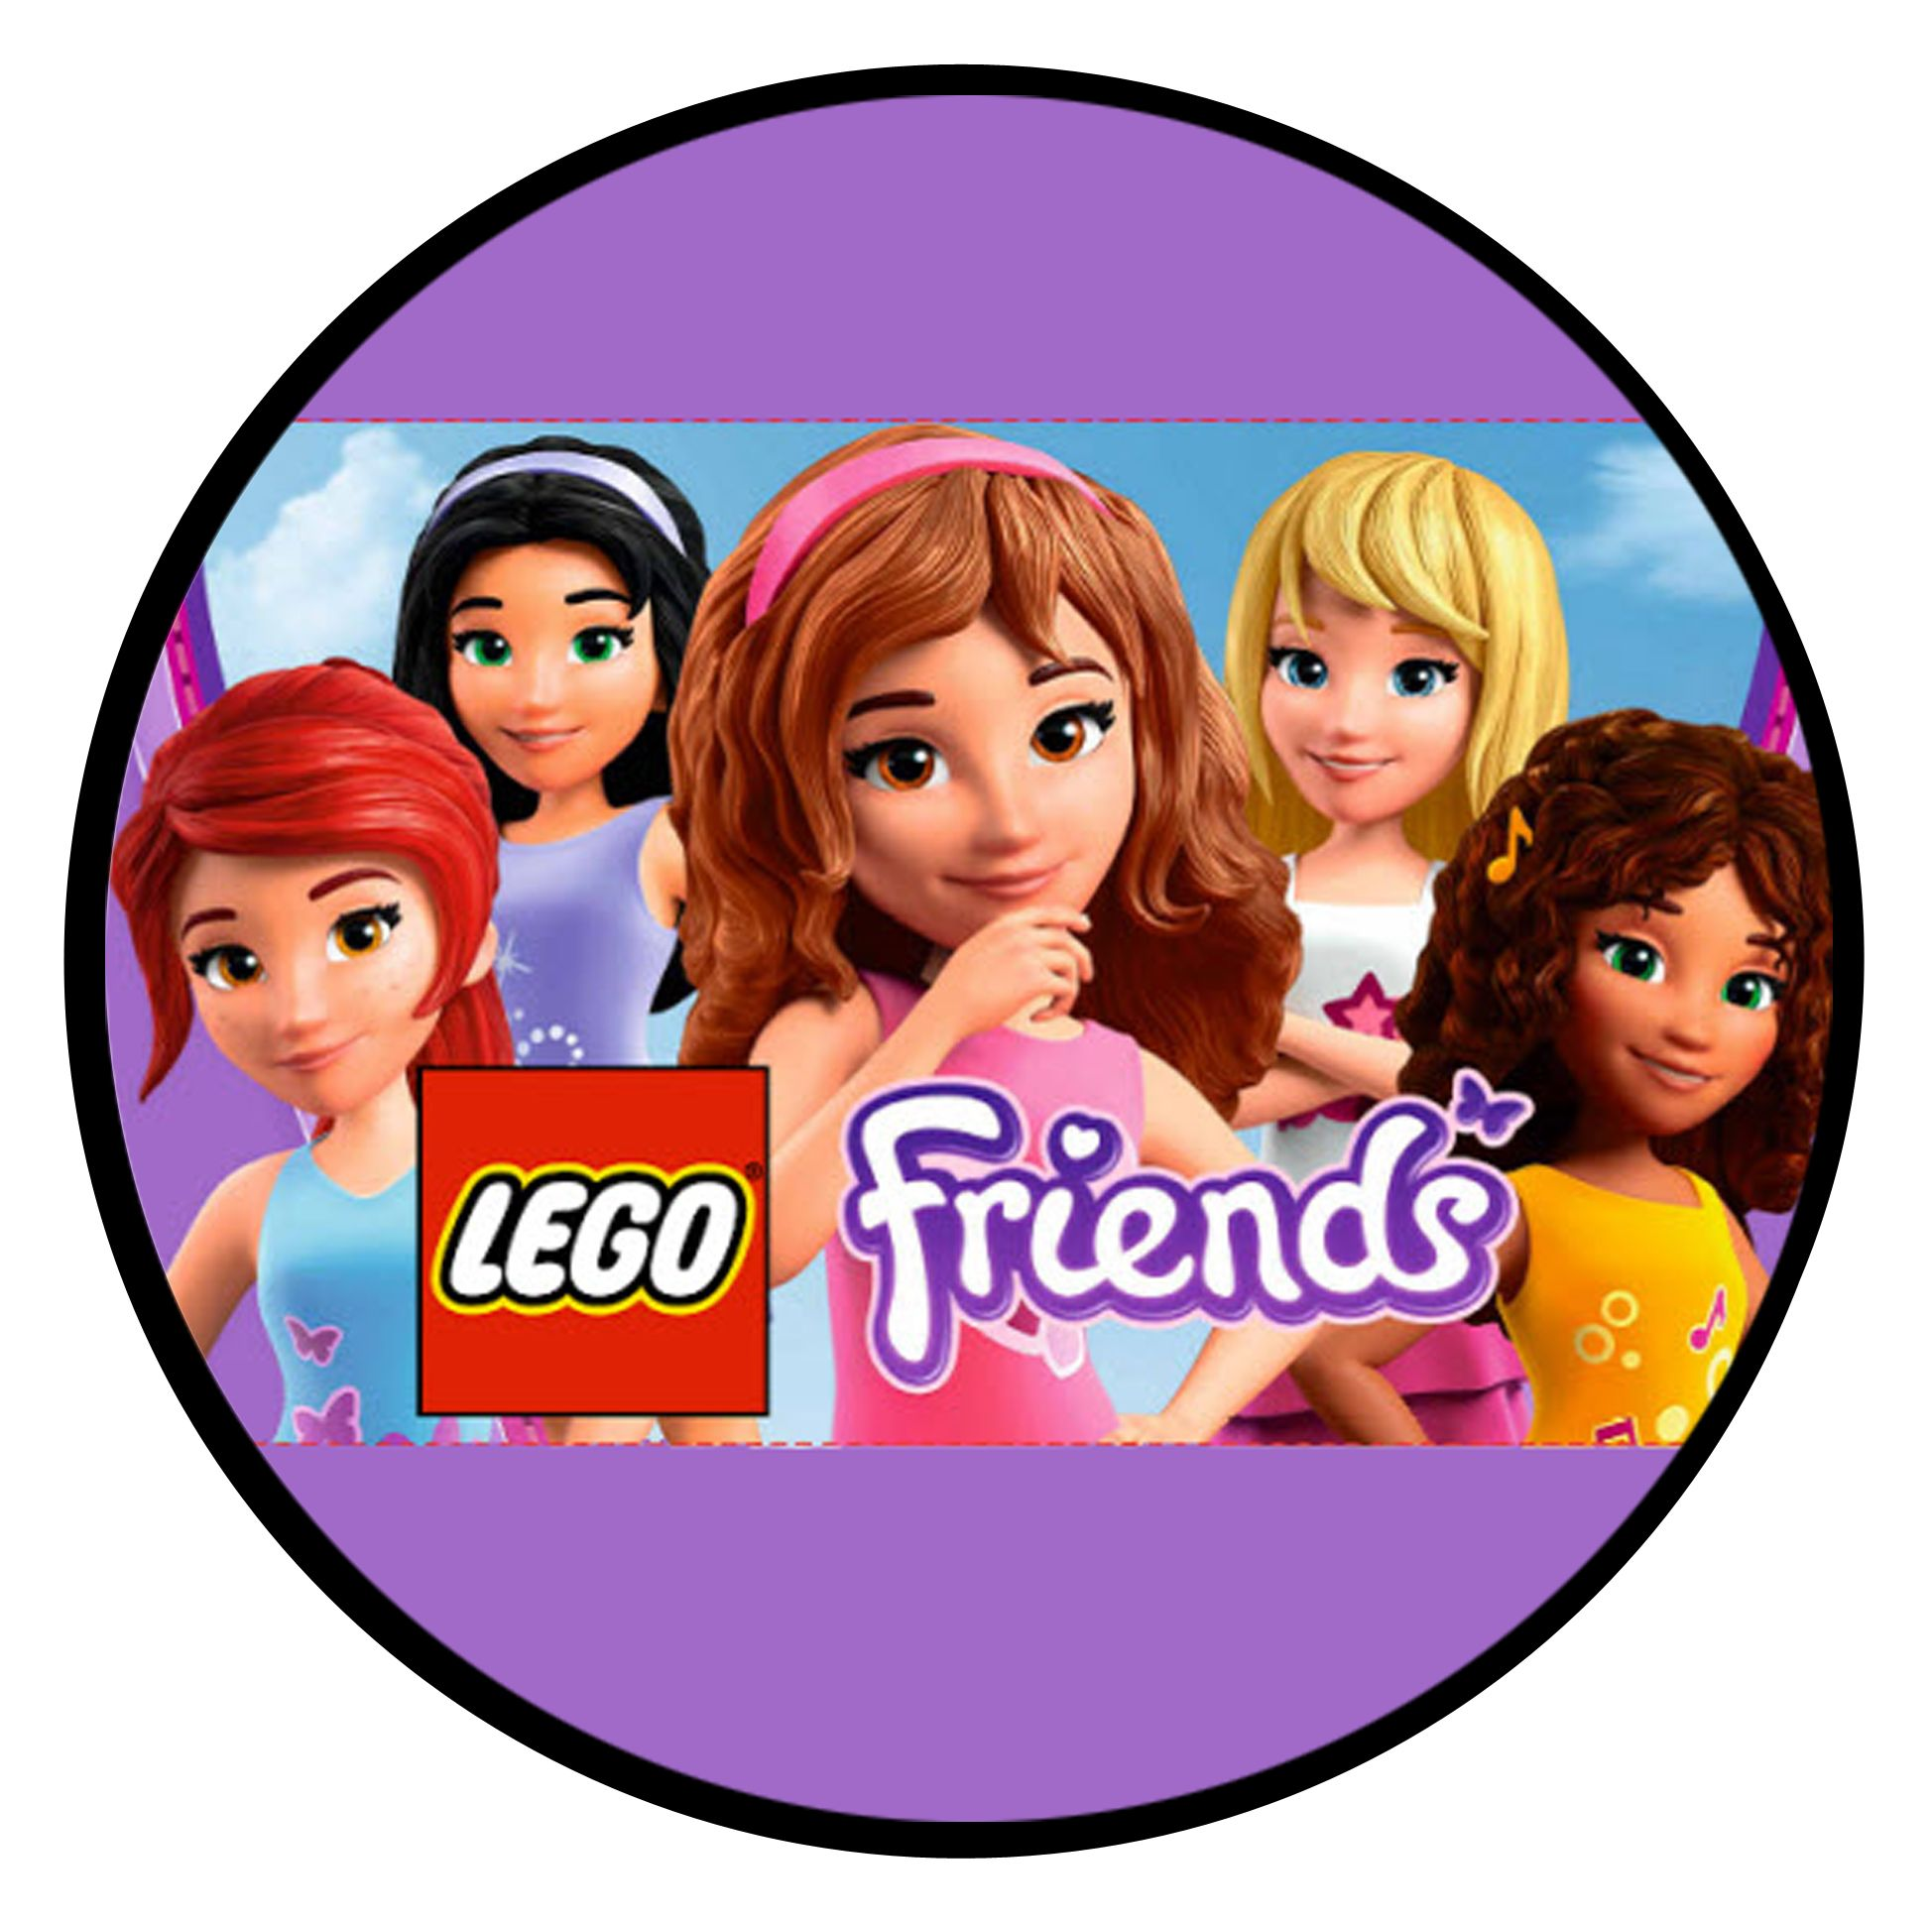 LEGO MLP Ideas besides 8mmthoughts blogspot also Watch moreover Elandra Dragon Ccd2d07389f34591b2c74e3b39c04601 besides Lego Duplo Logo. on friendship lego sets